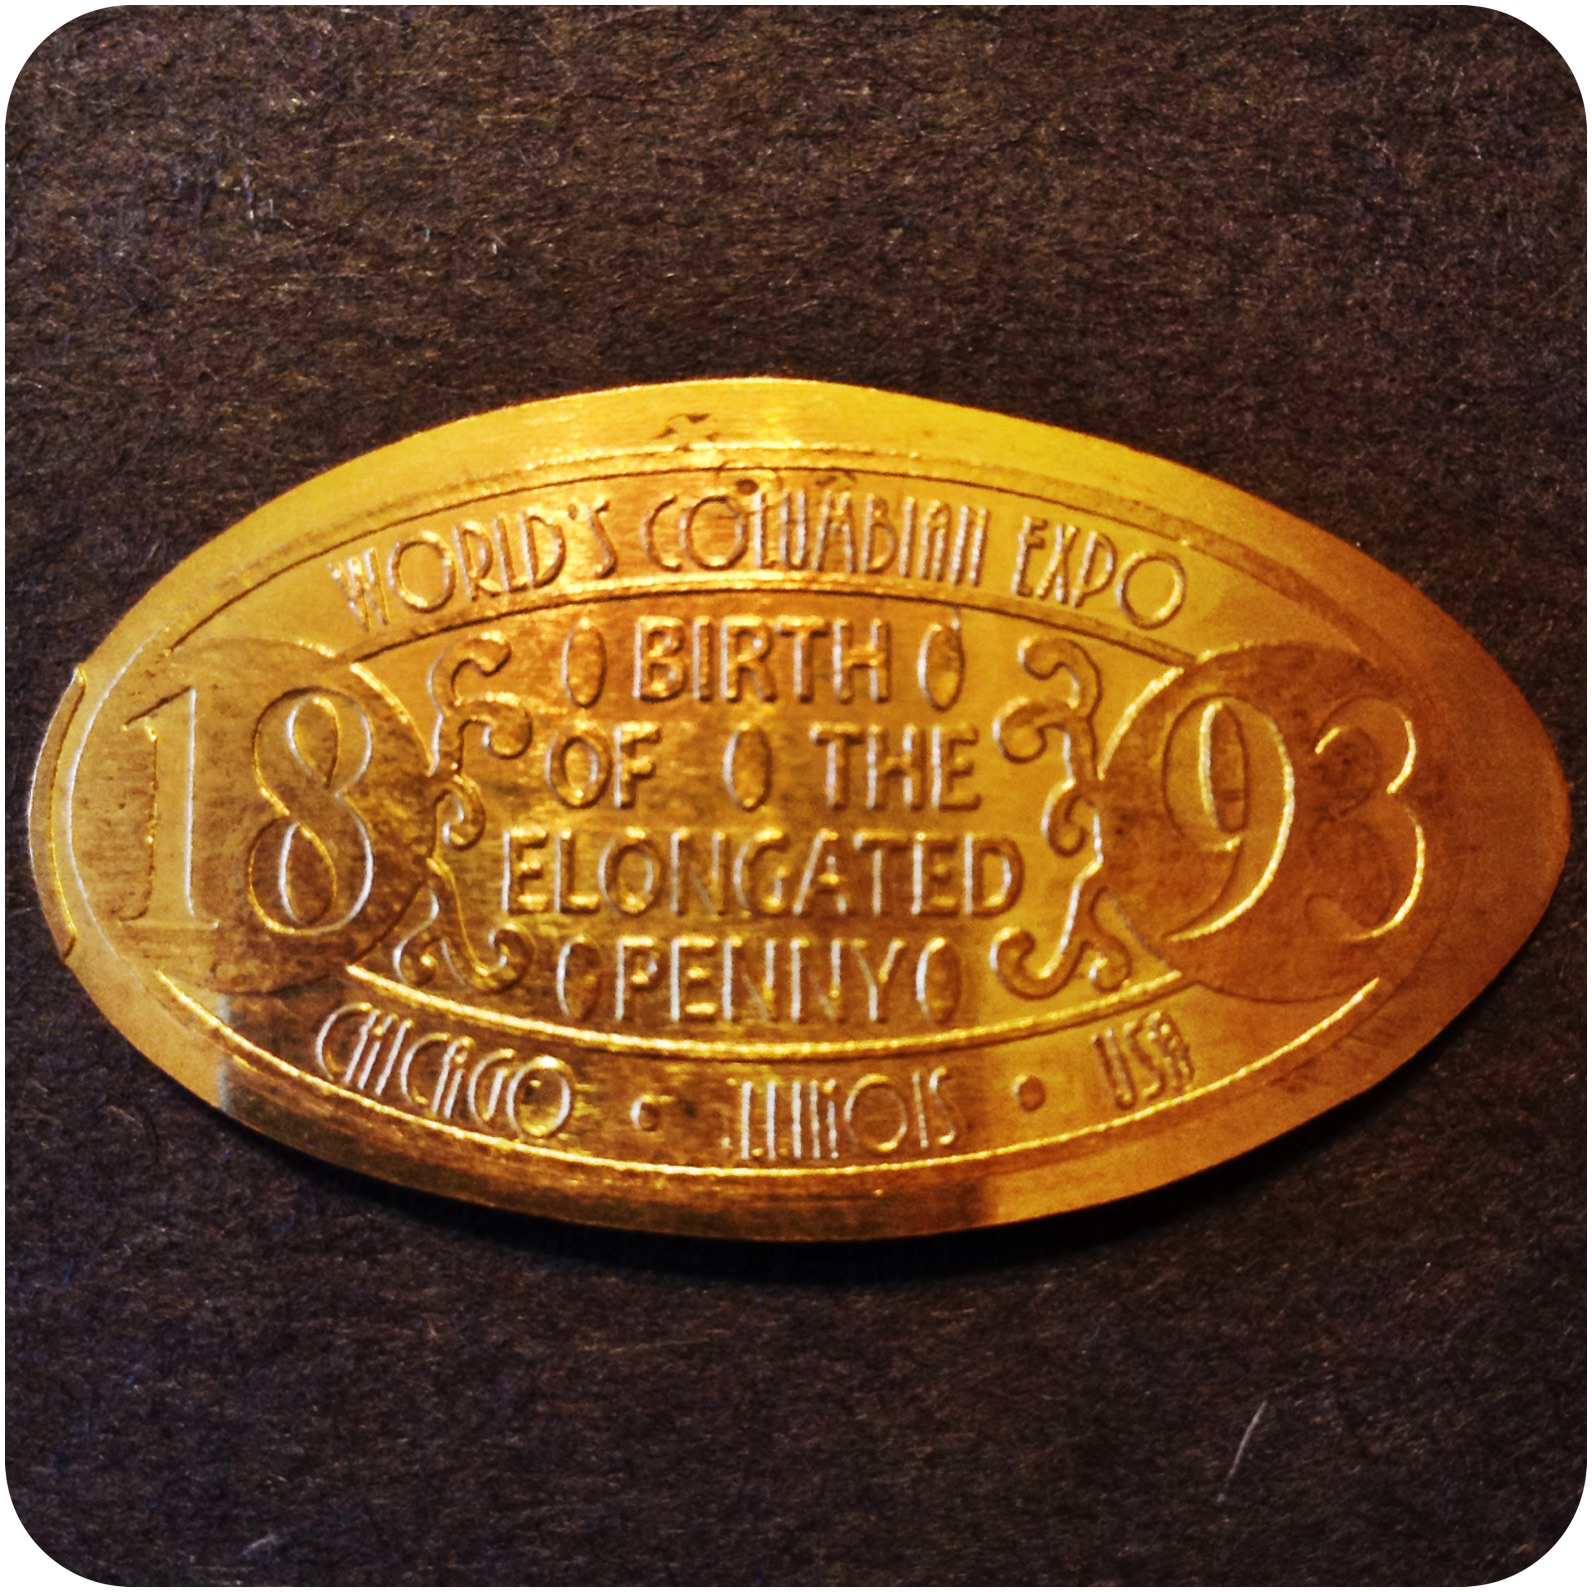 1893, Birth of the Elongated Penny, World's Columbian Expo, Chicago Illinois USA